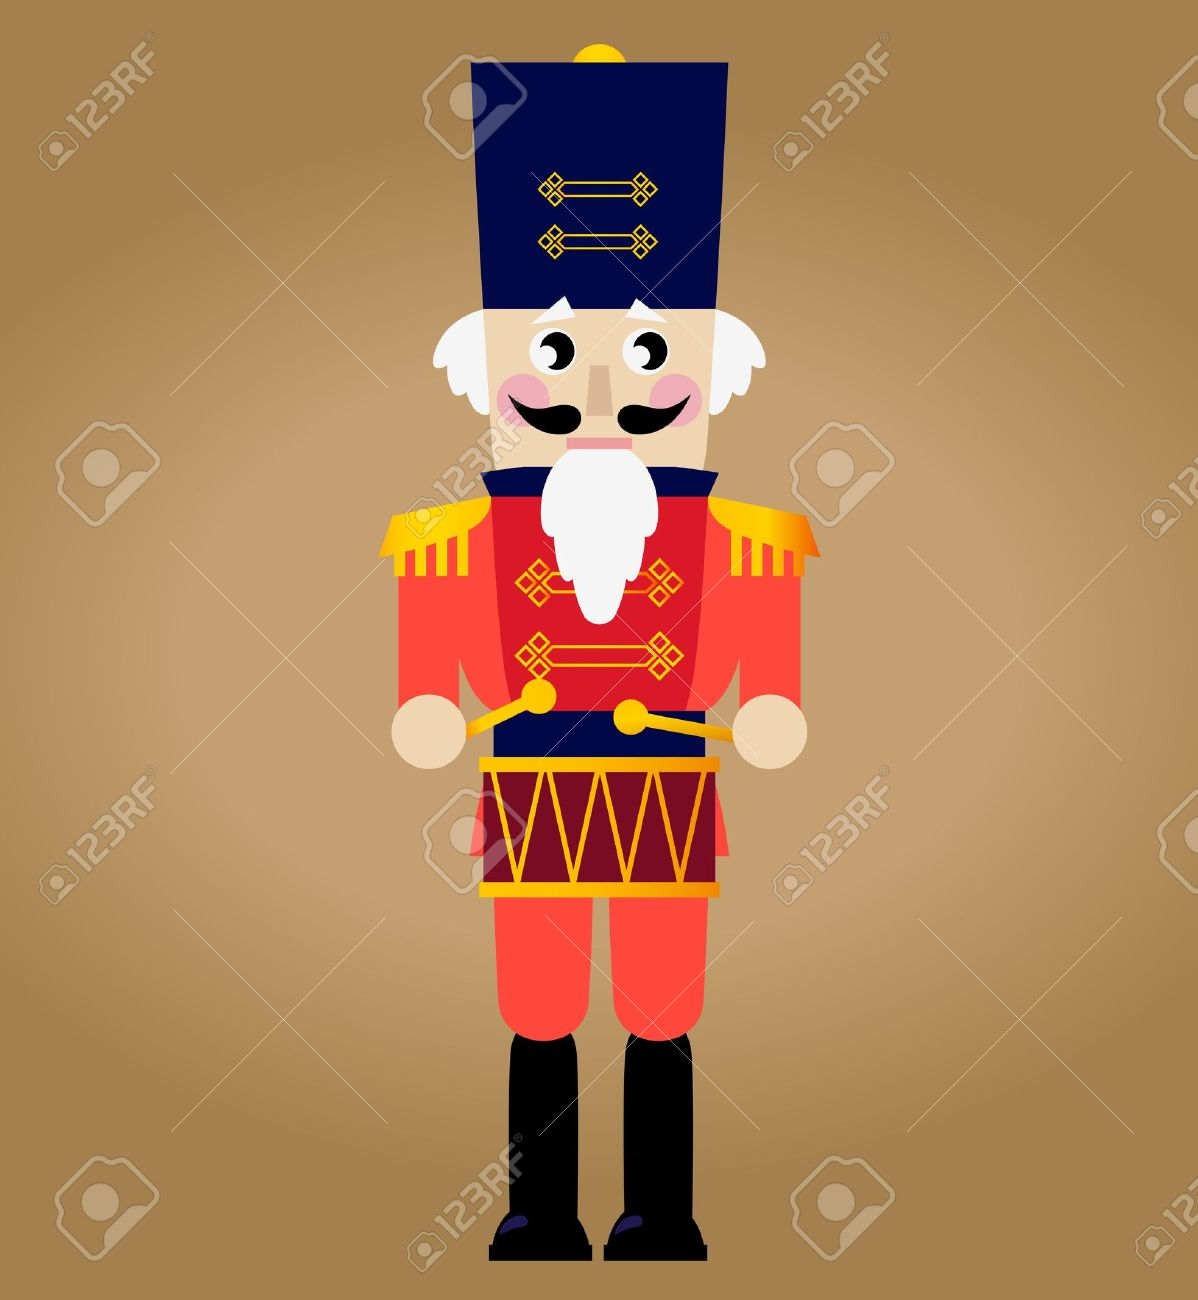 Tin soldier or Nutcracker with drum. Stock Vector - 16329897